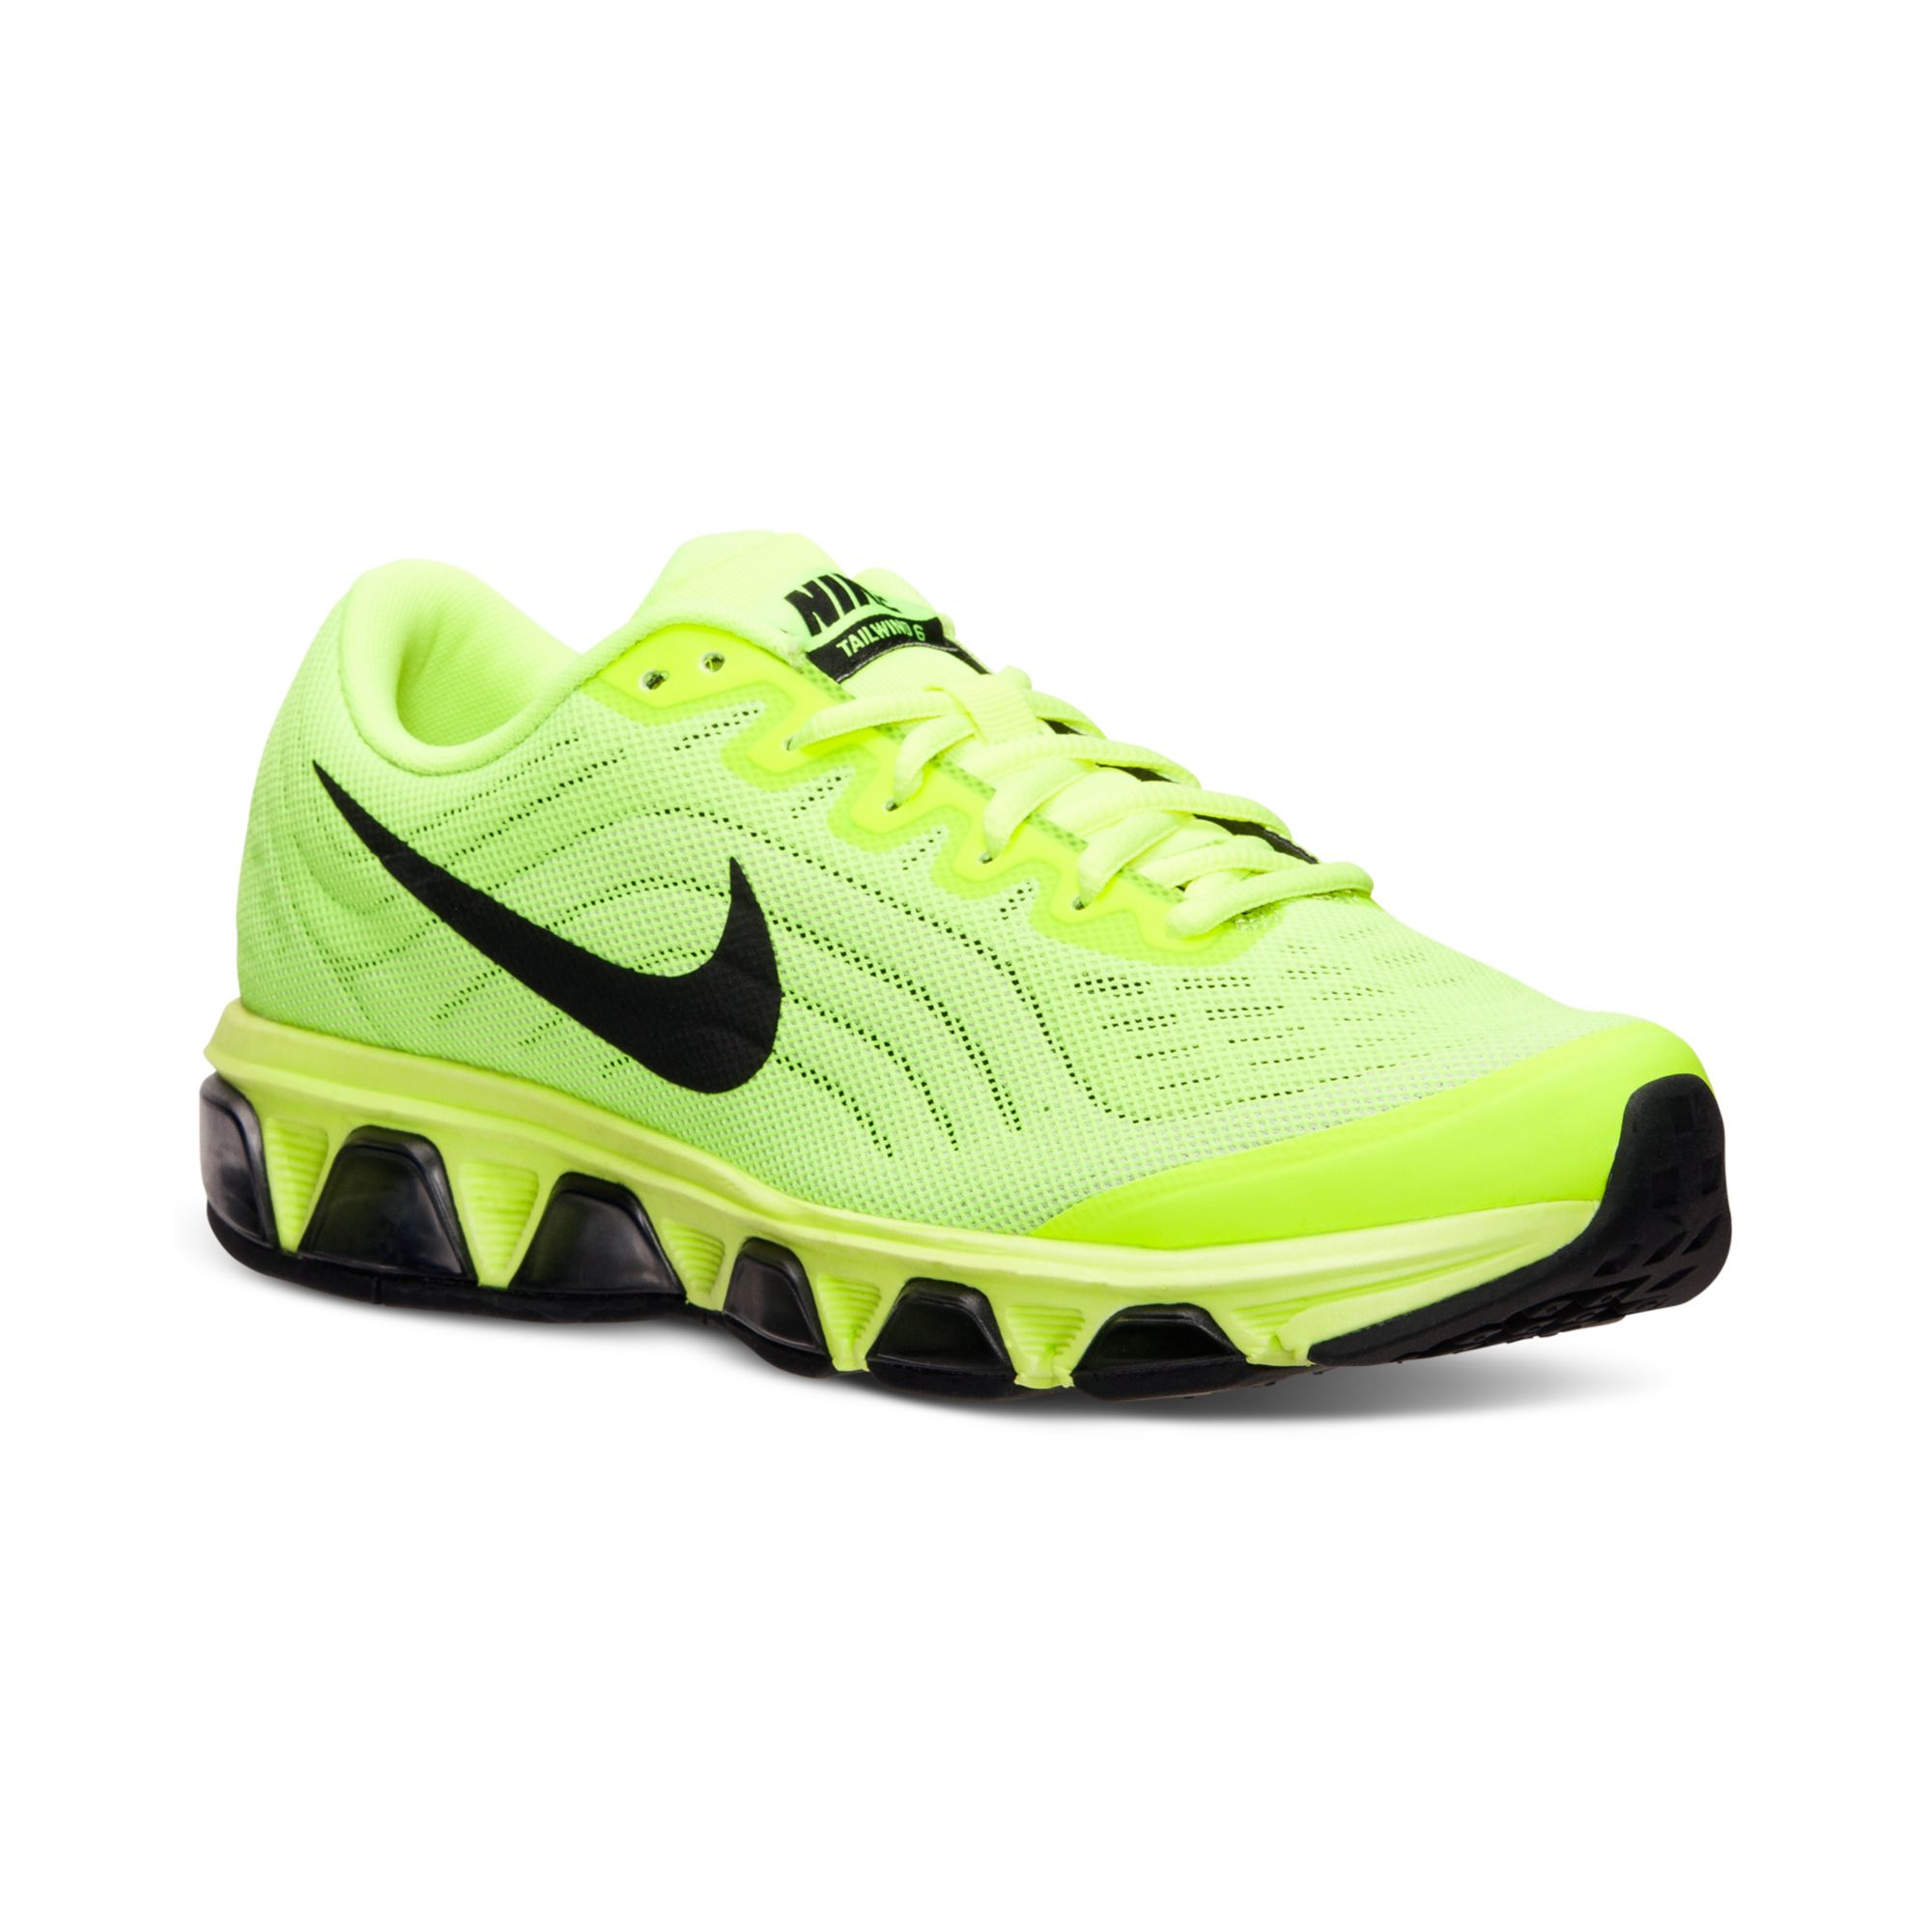 Lyst - Nike Mens Air Max Tailwind 6 Running Sneakers From Finish ... da80d6bca2c8